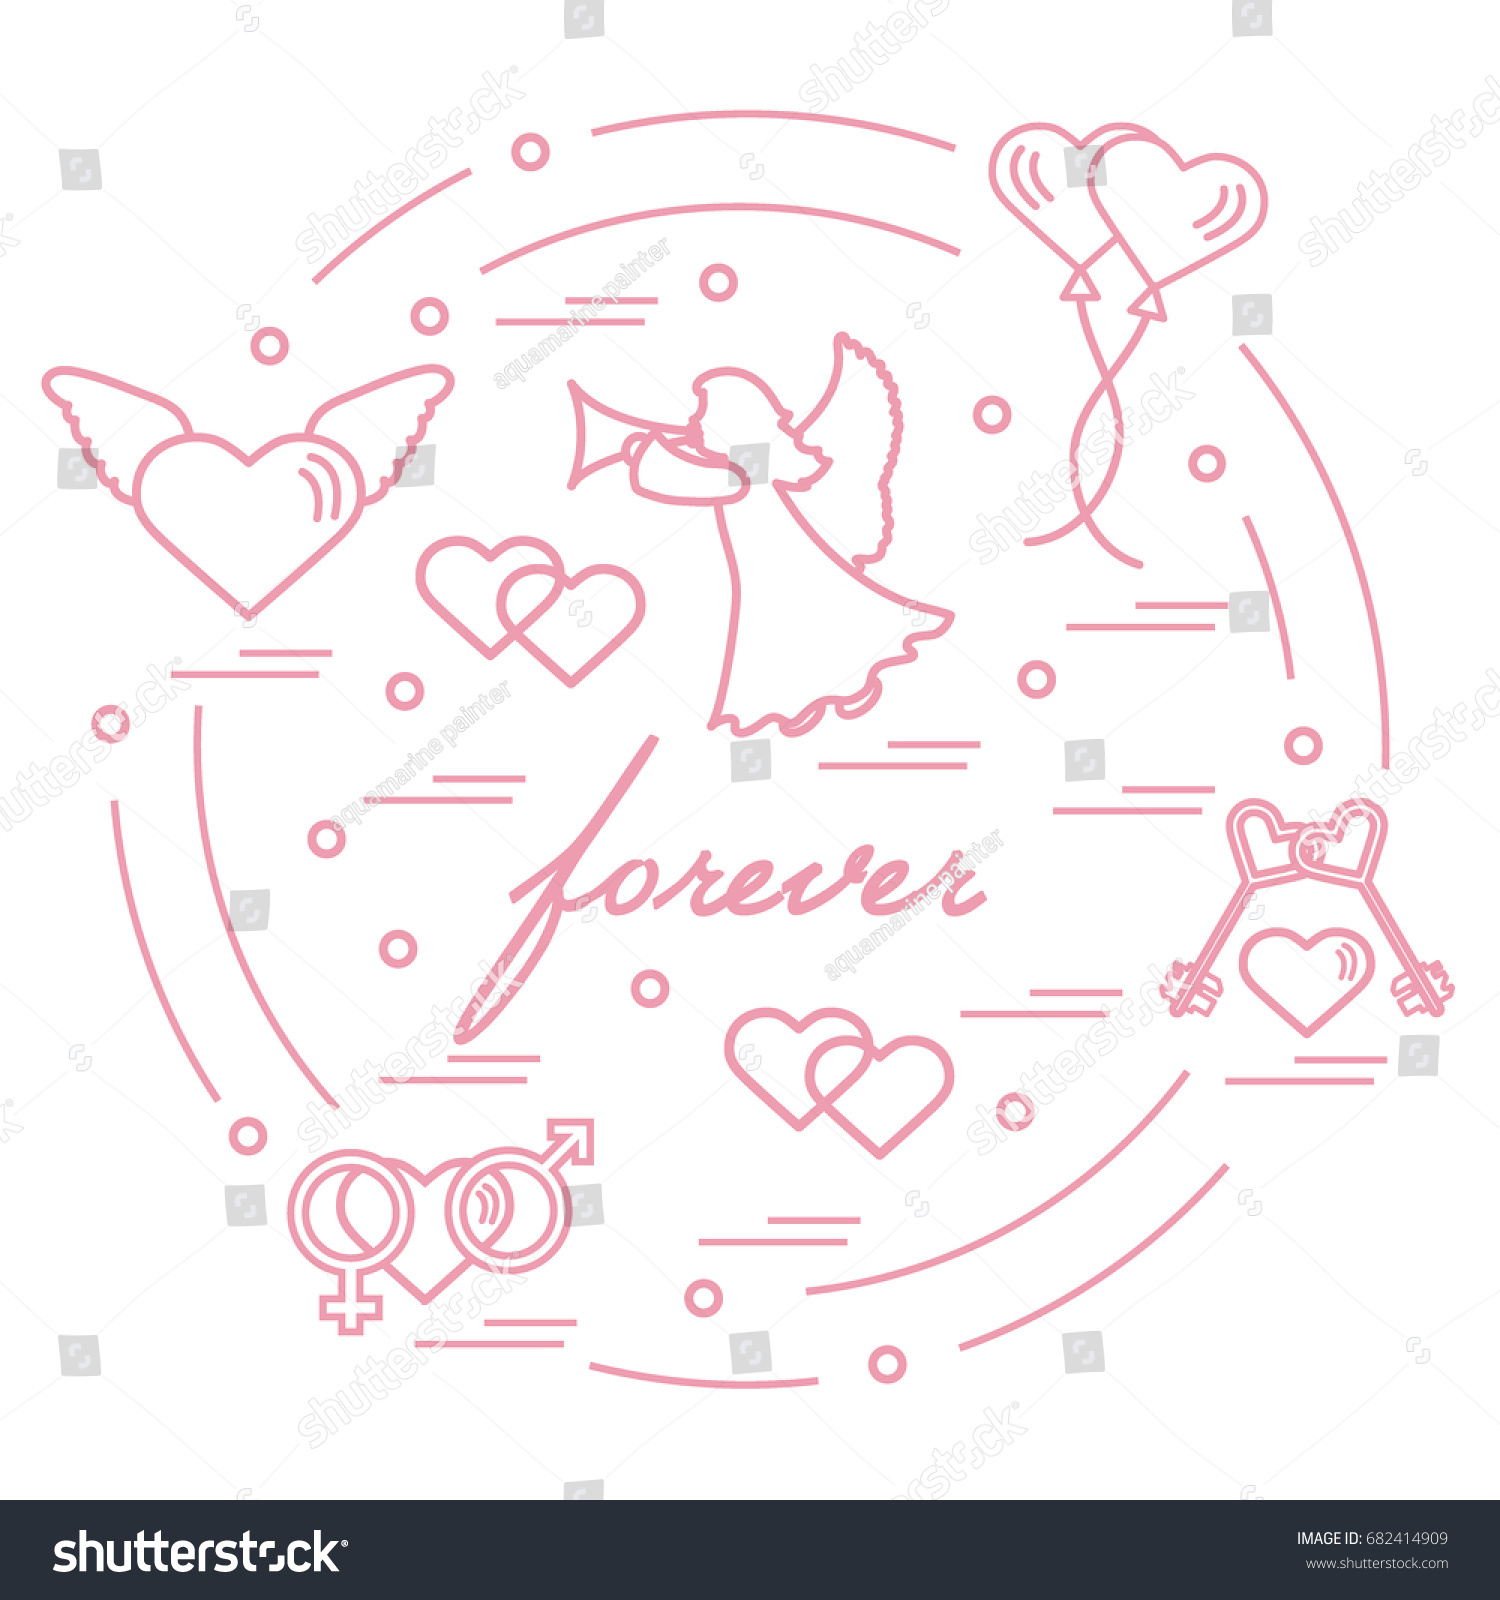 Cute vector illustration different love symbols stock vector cute vector illustration with different love symbols hearts air balloons key angel buycottarizona Images